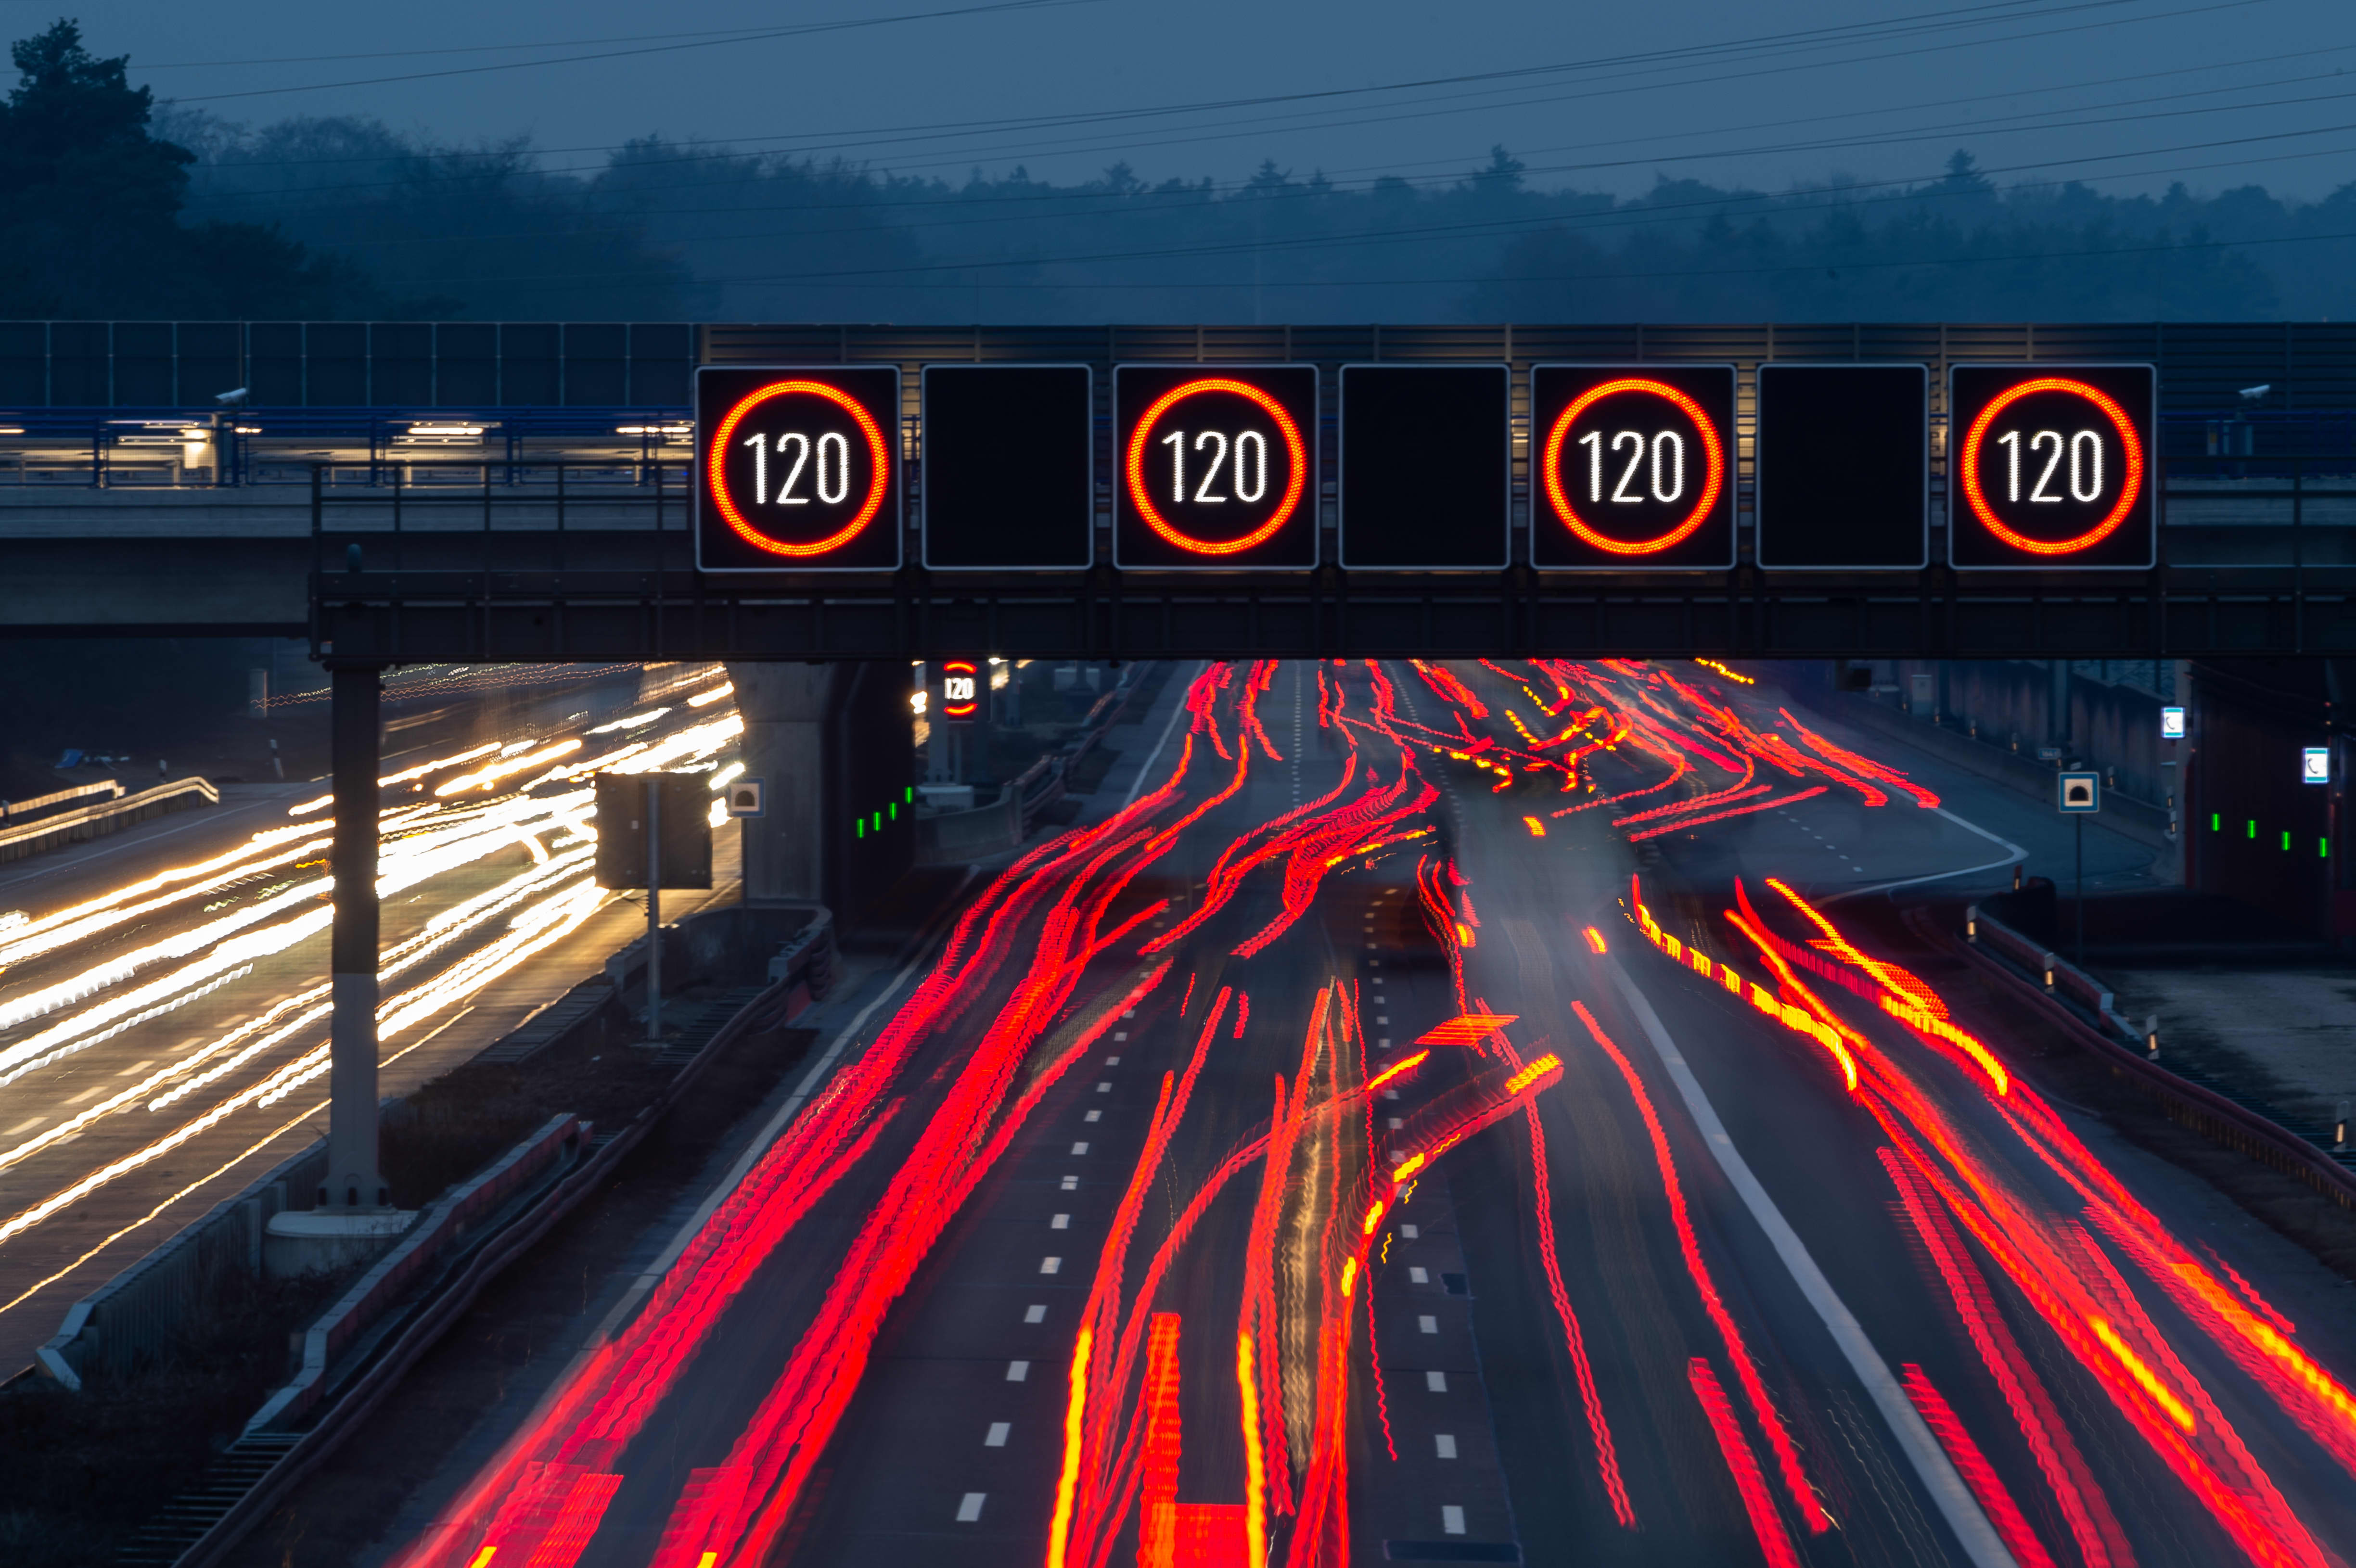 Illuminated panels indicate a speed limit of 120 kilometers per hour above the A3 motorway near Frankfurt Airport, Germany.